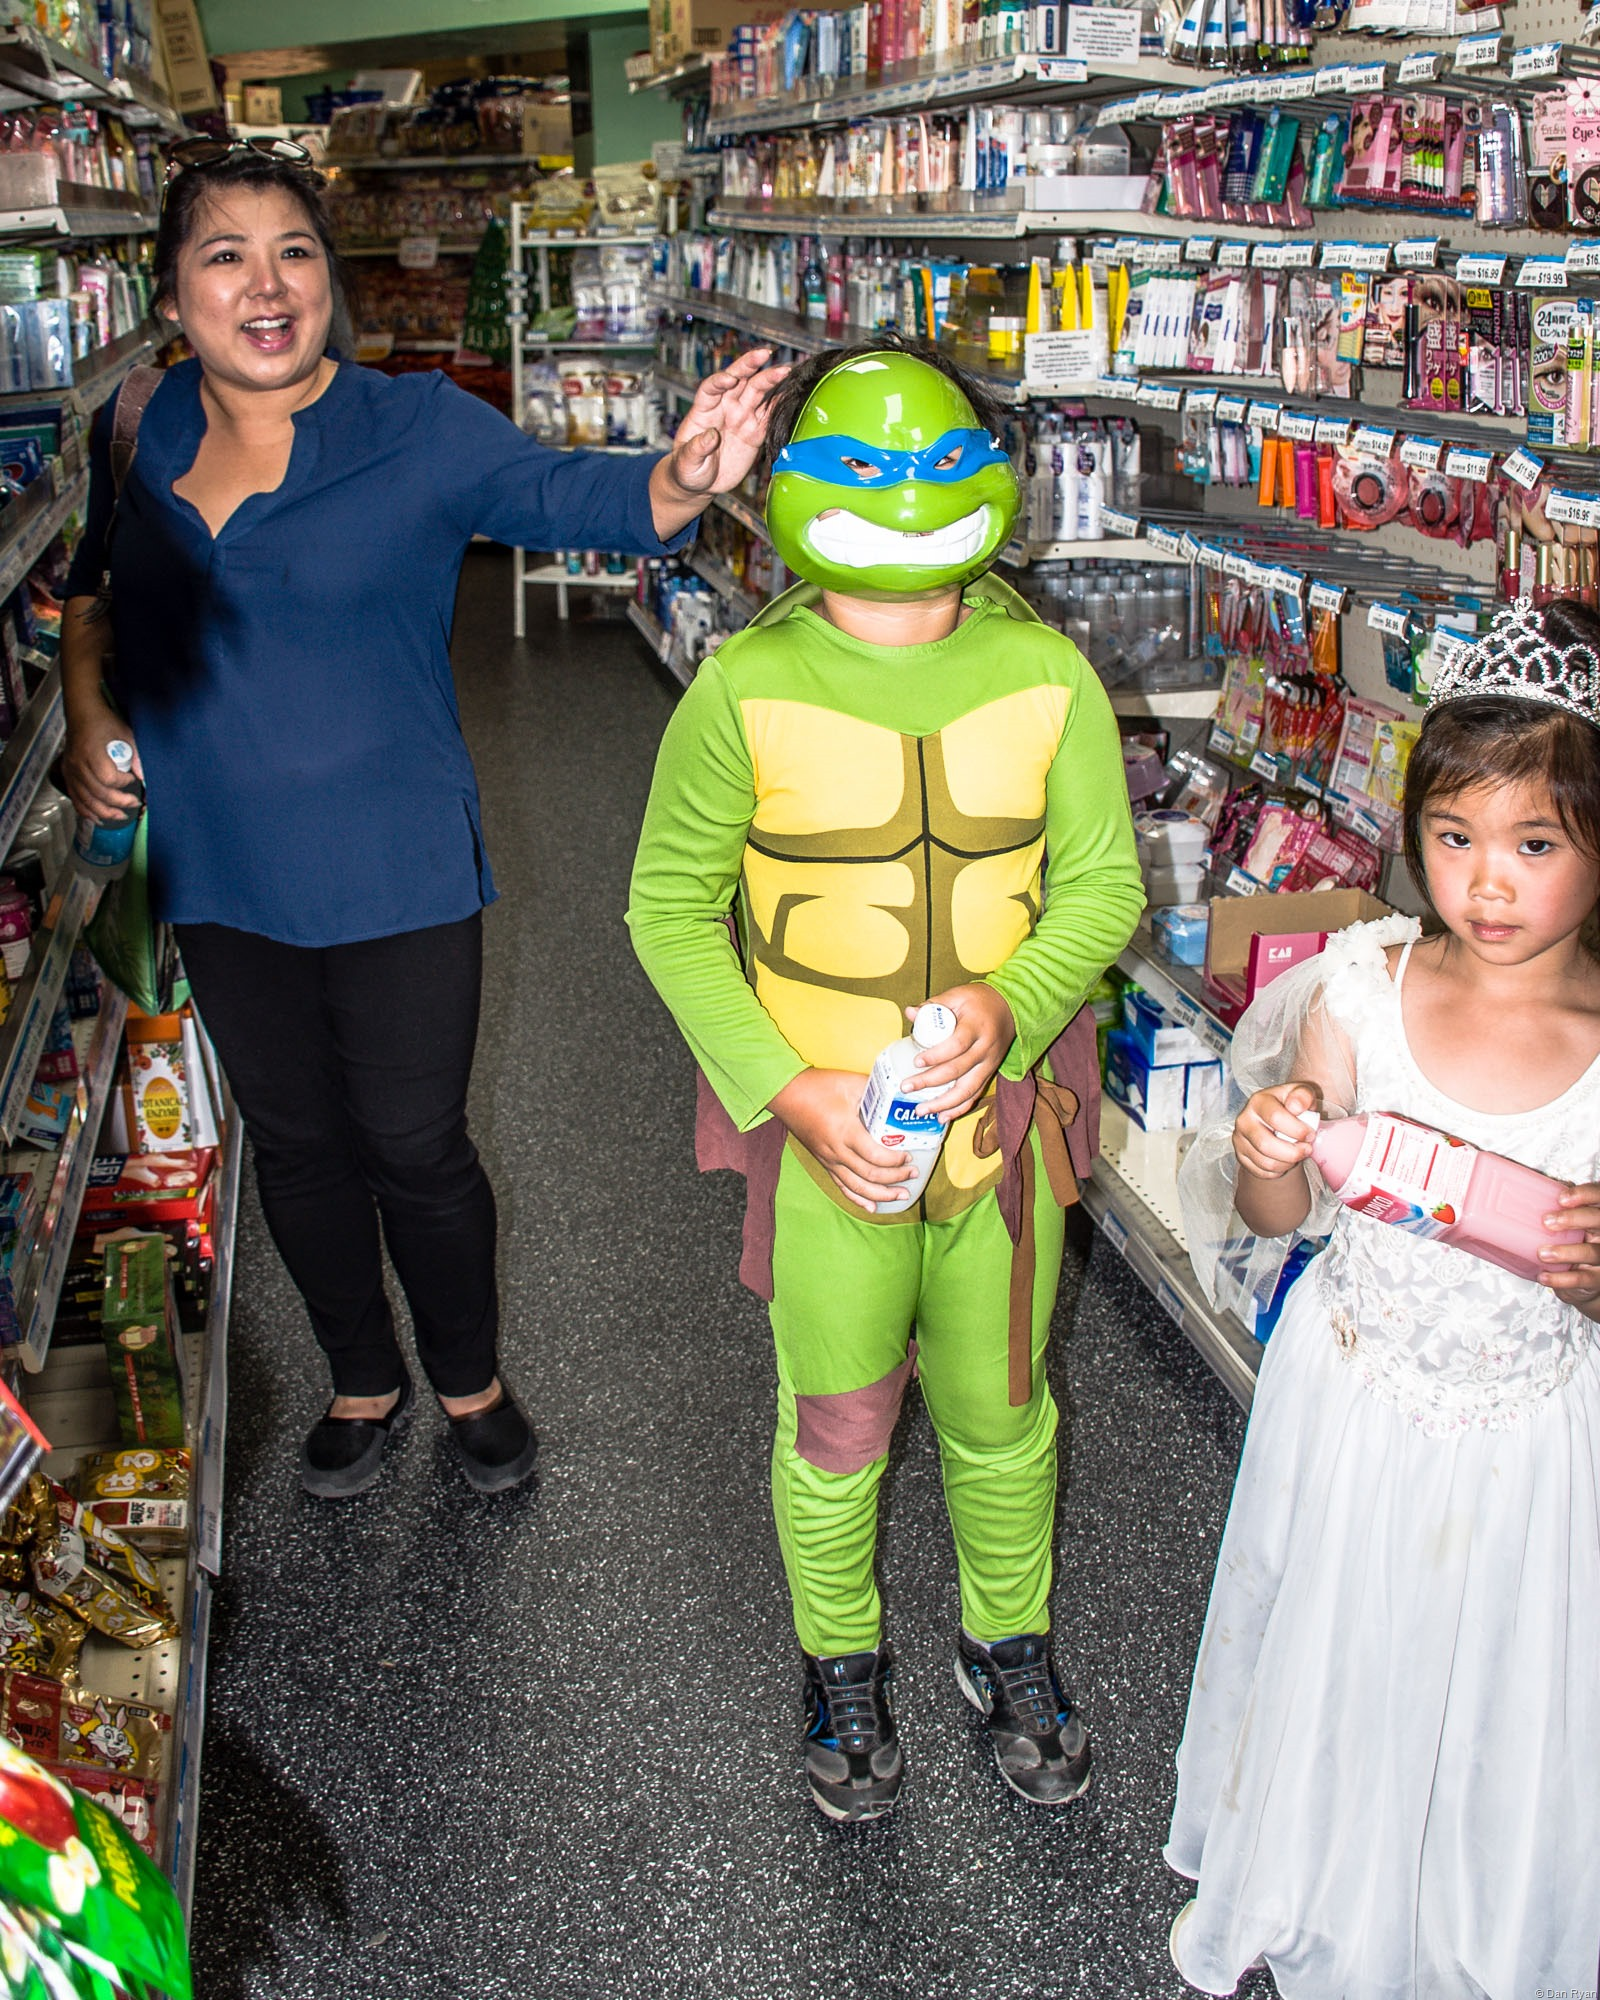 Teenage mutant ninja turtle kid and mom and sister